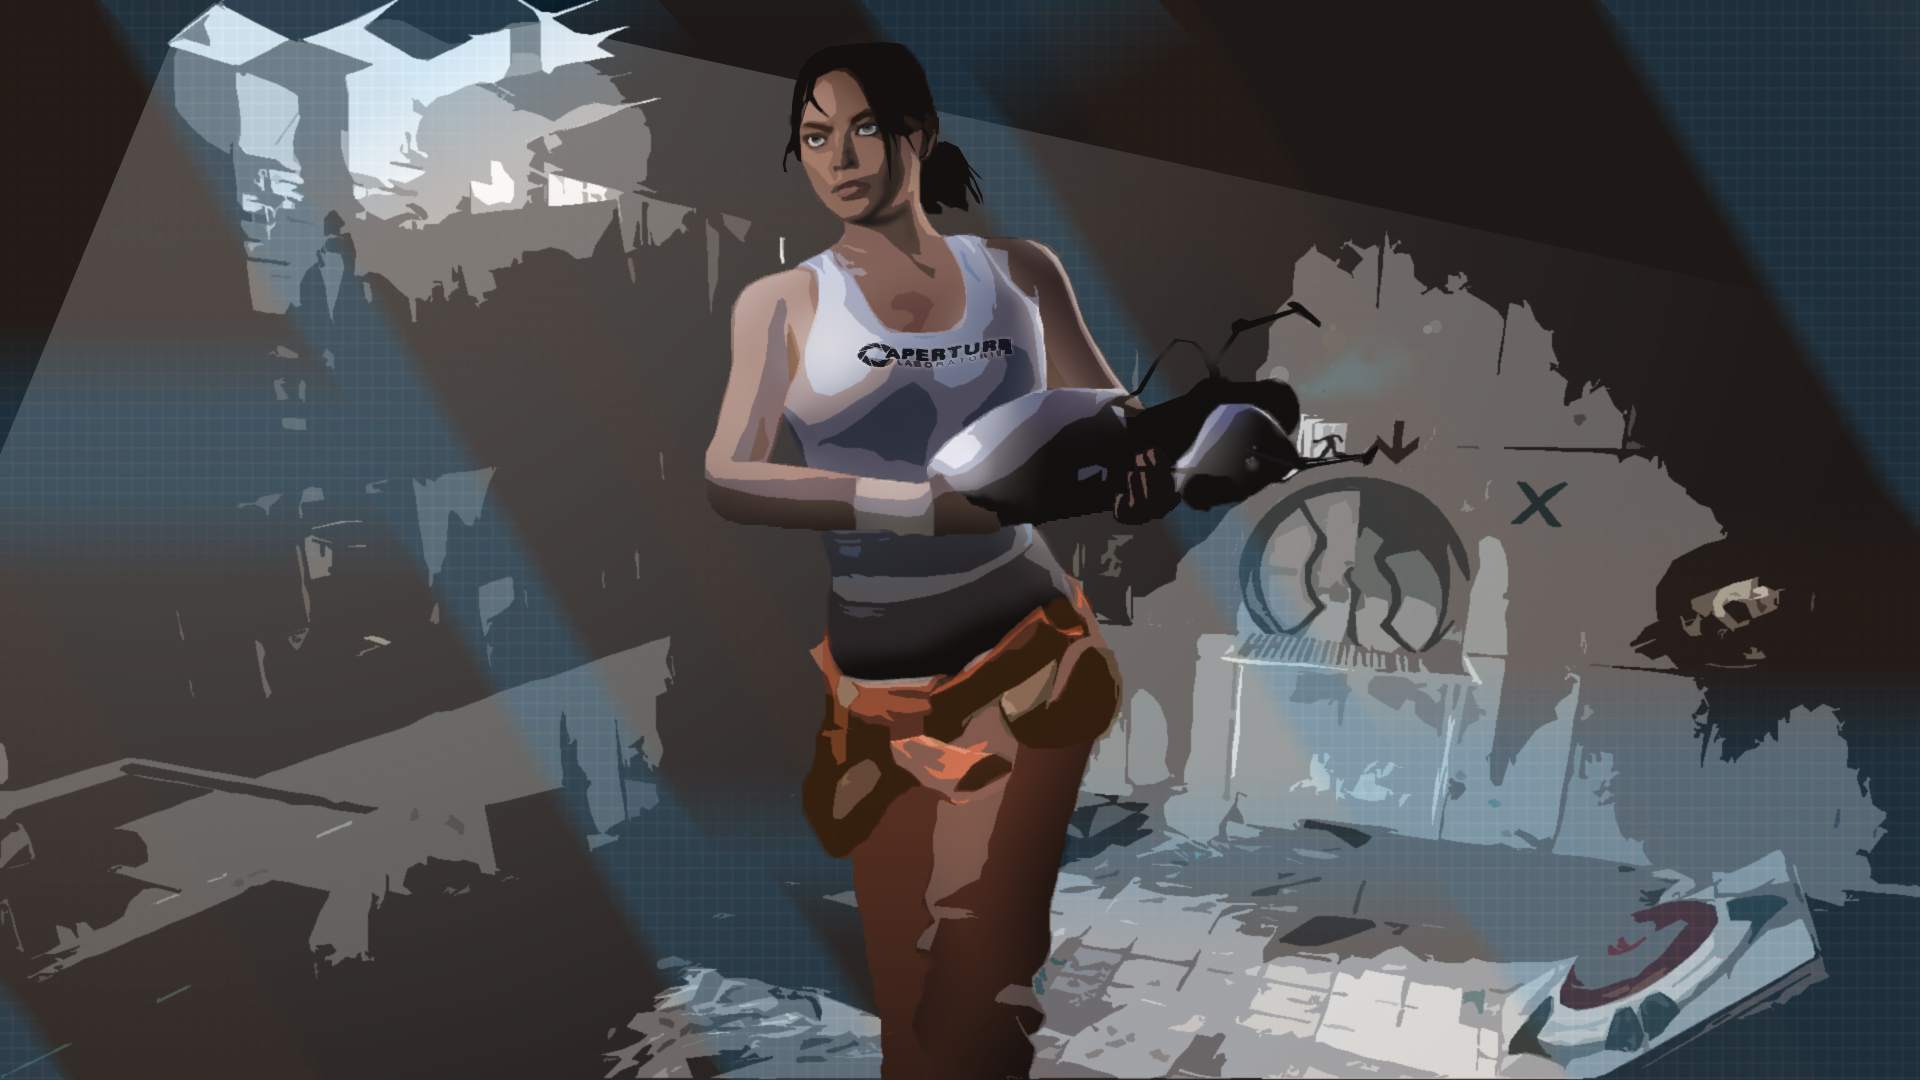 Portal 2 Wallpaper -3 by jonnysonny